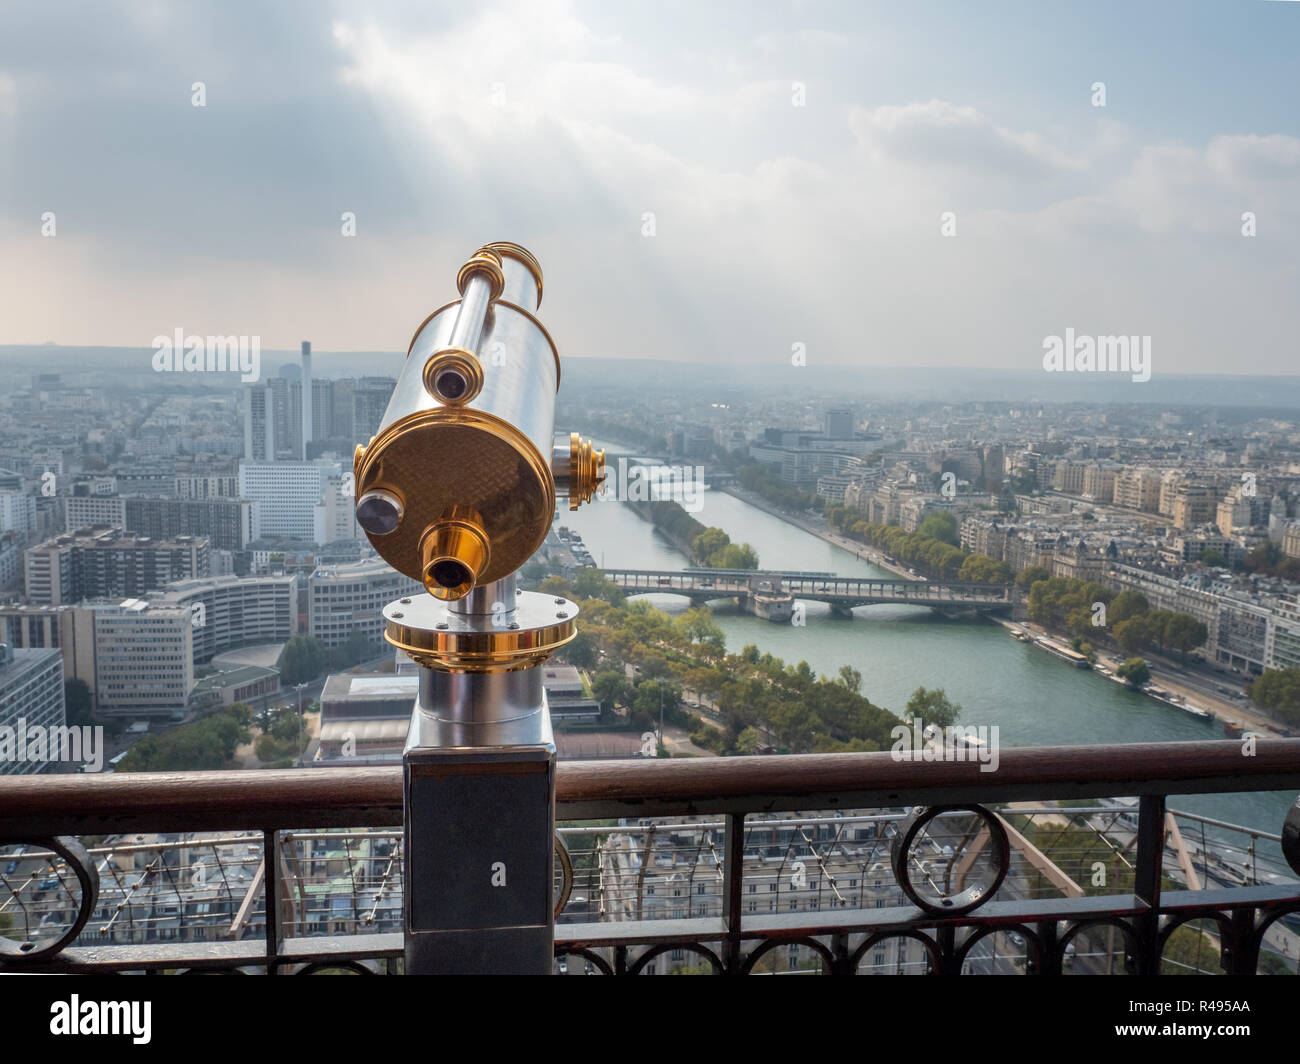 View of Gold and Silver Telescope Looking East of the Eiffell Tower - Stock Image